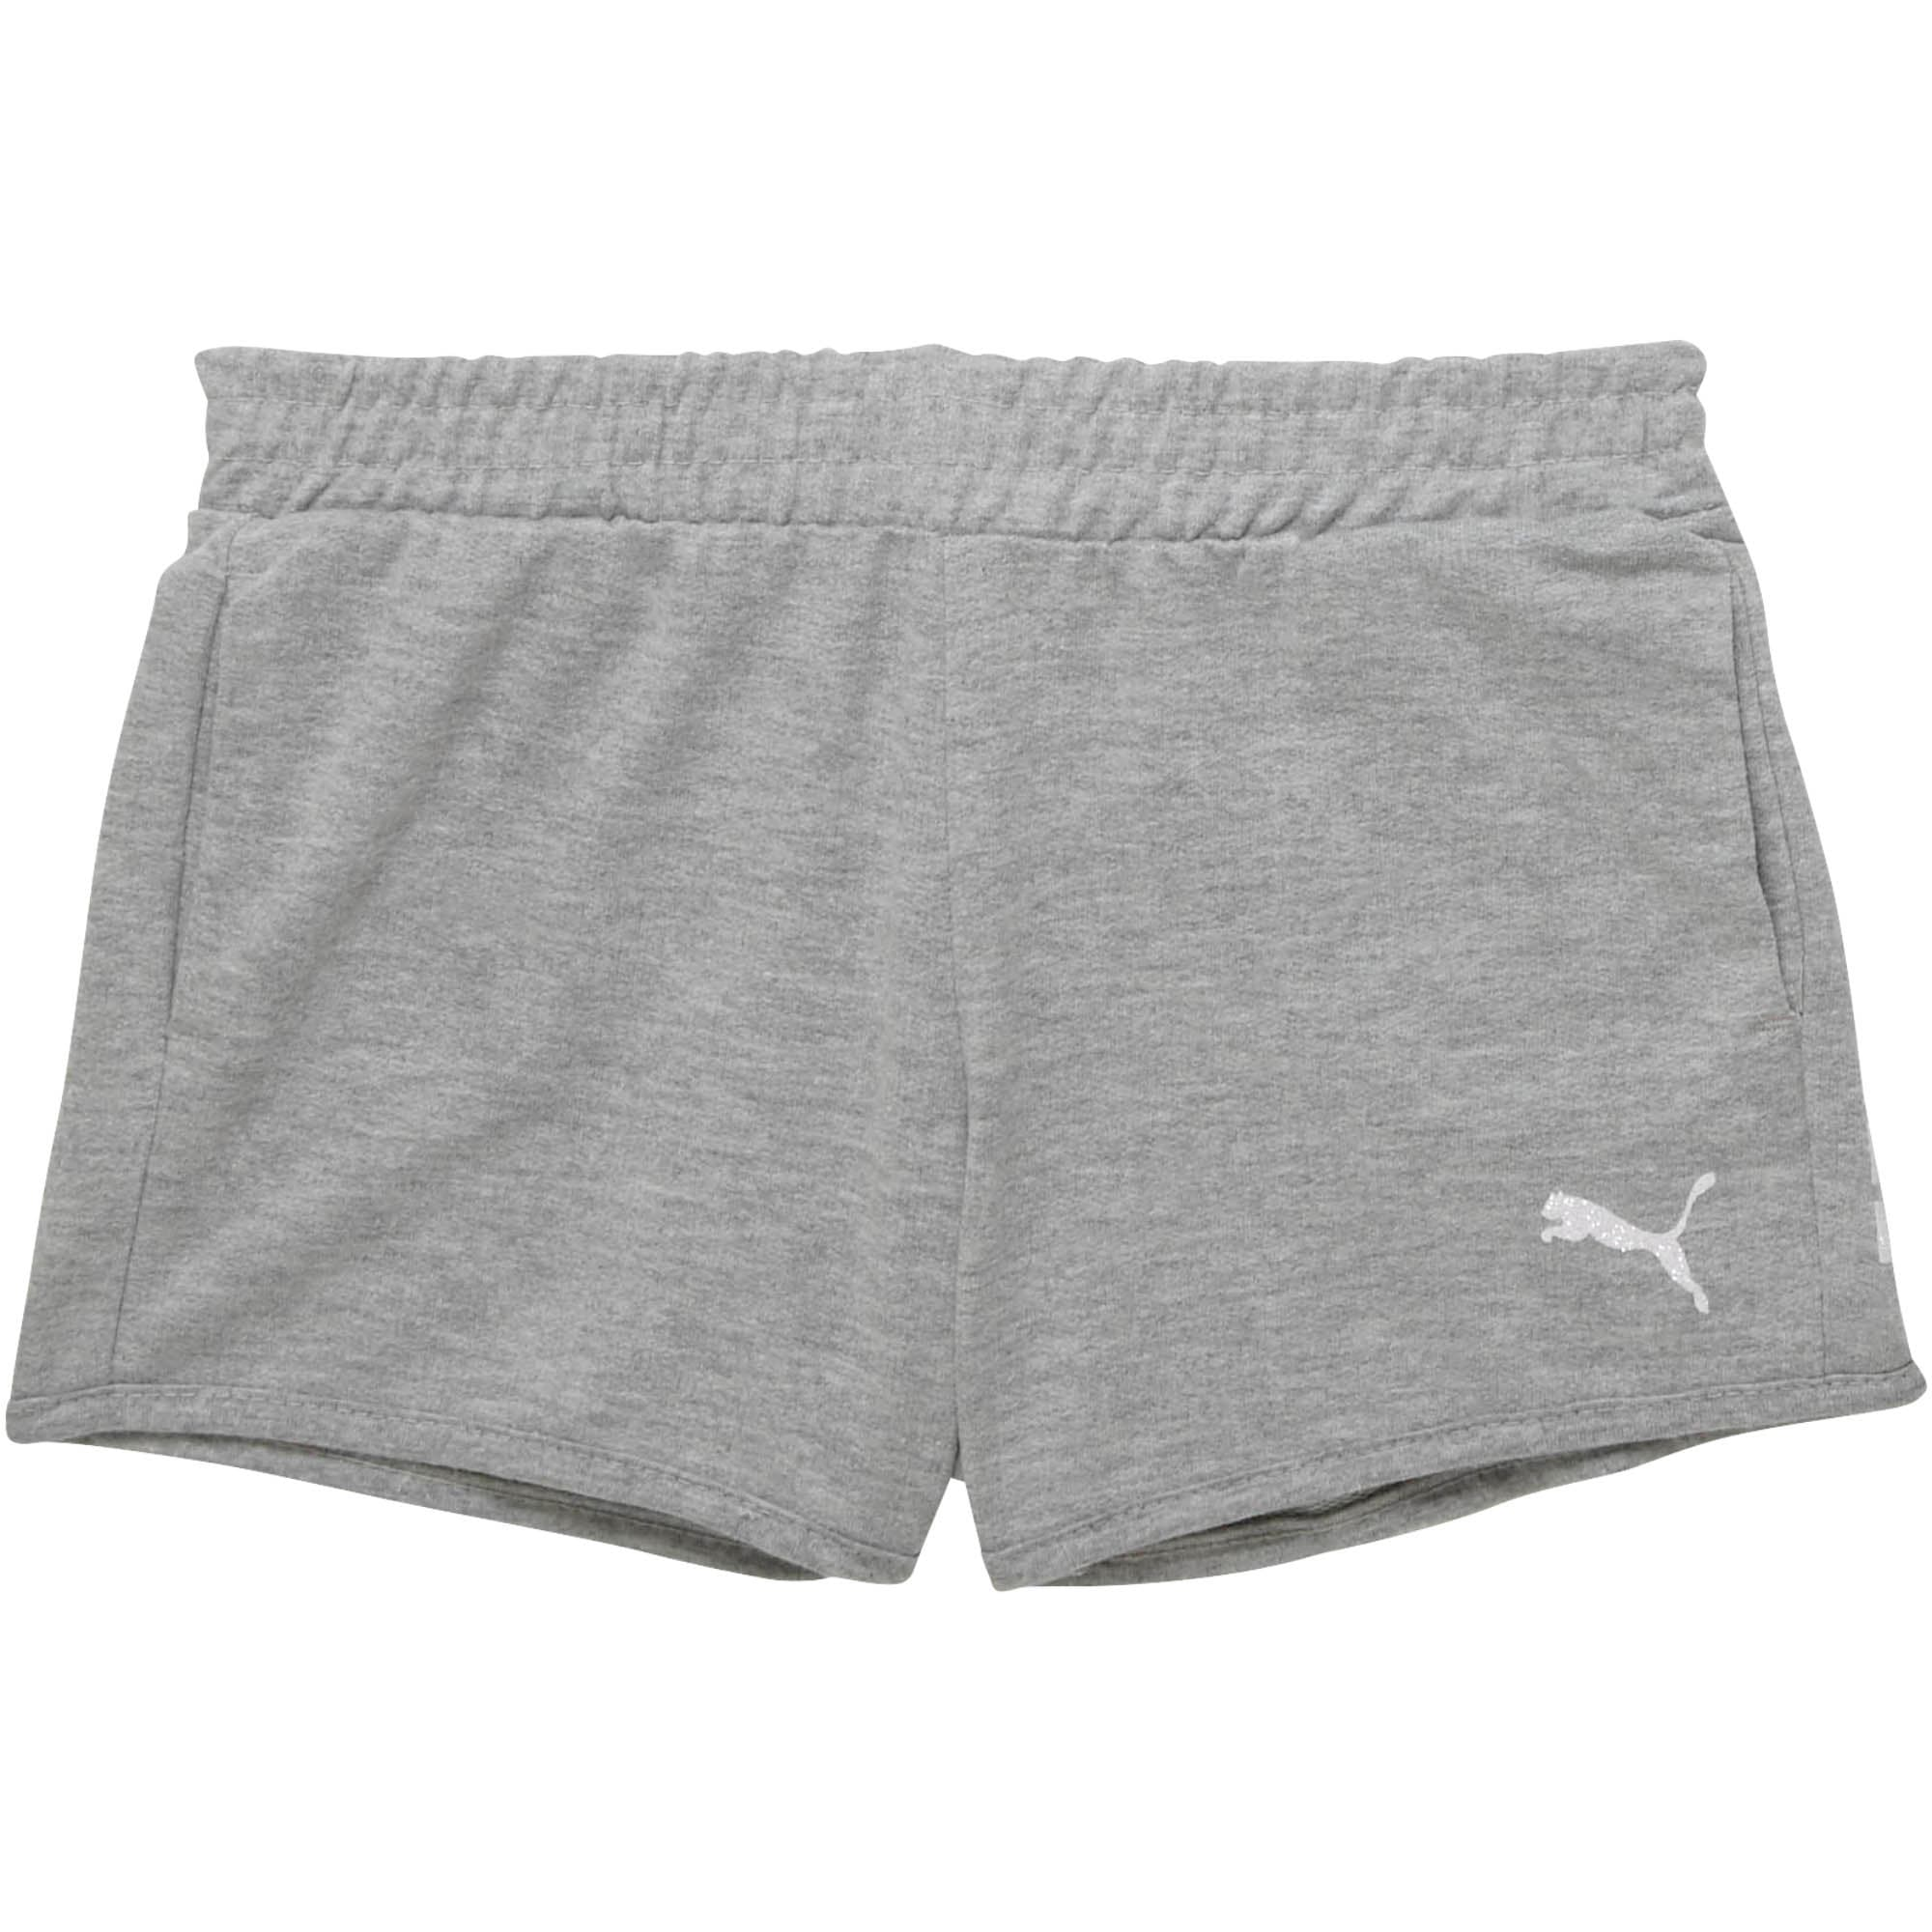 Thumbnail 1 of Girls' French Terry Shorts JR, LIGHT HEATHER GREY, medium